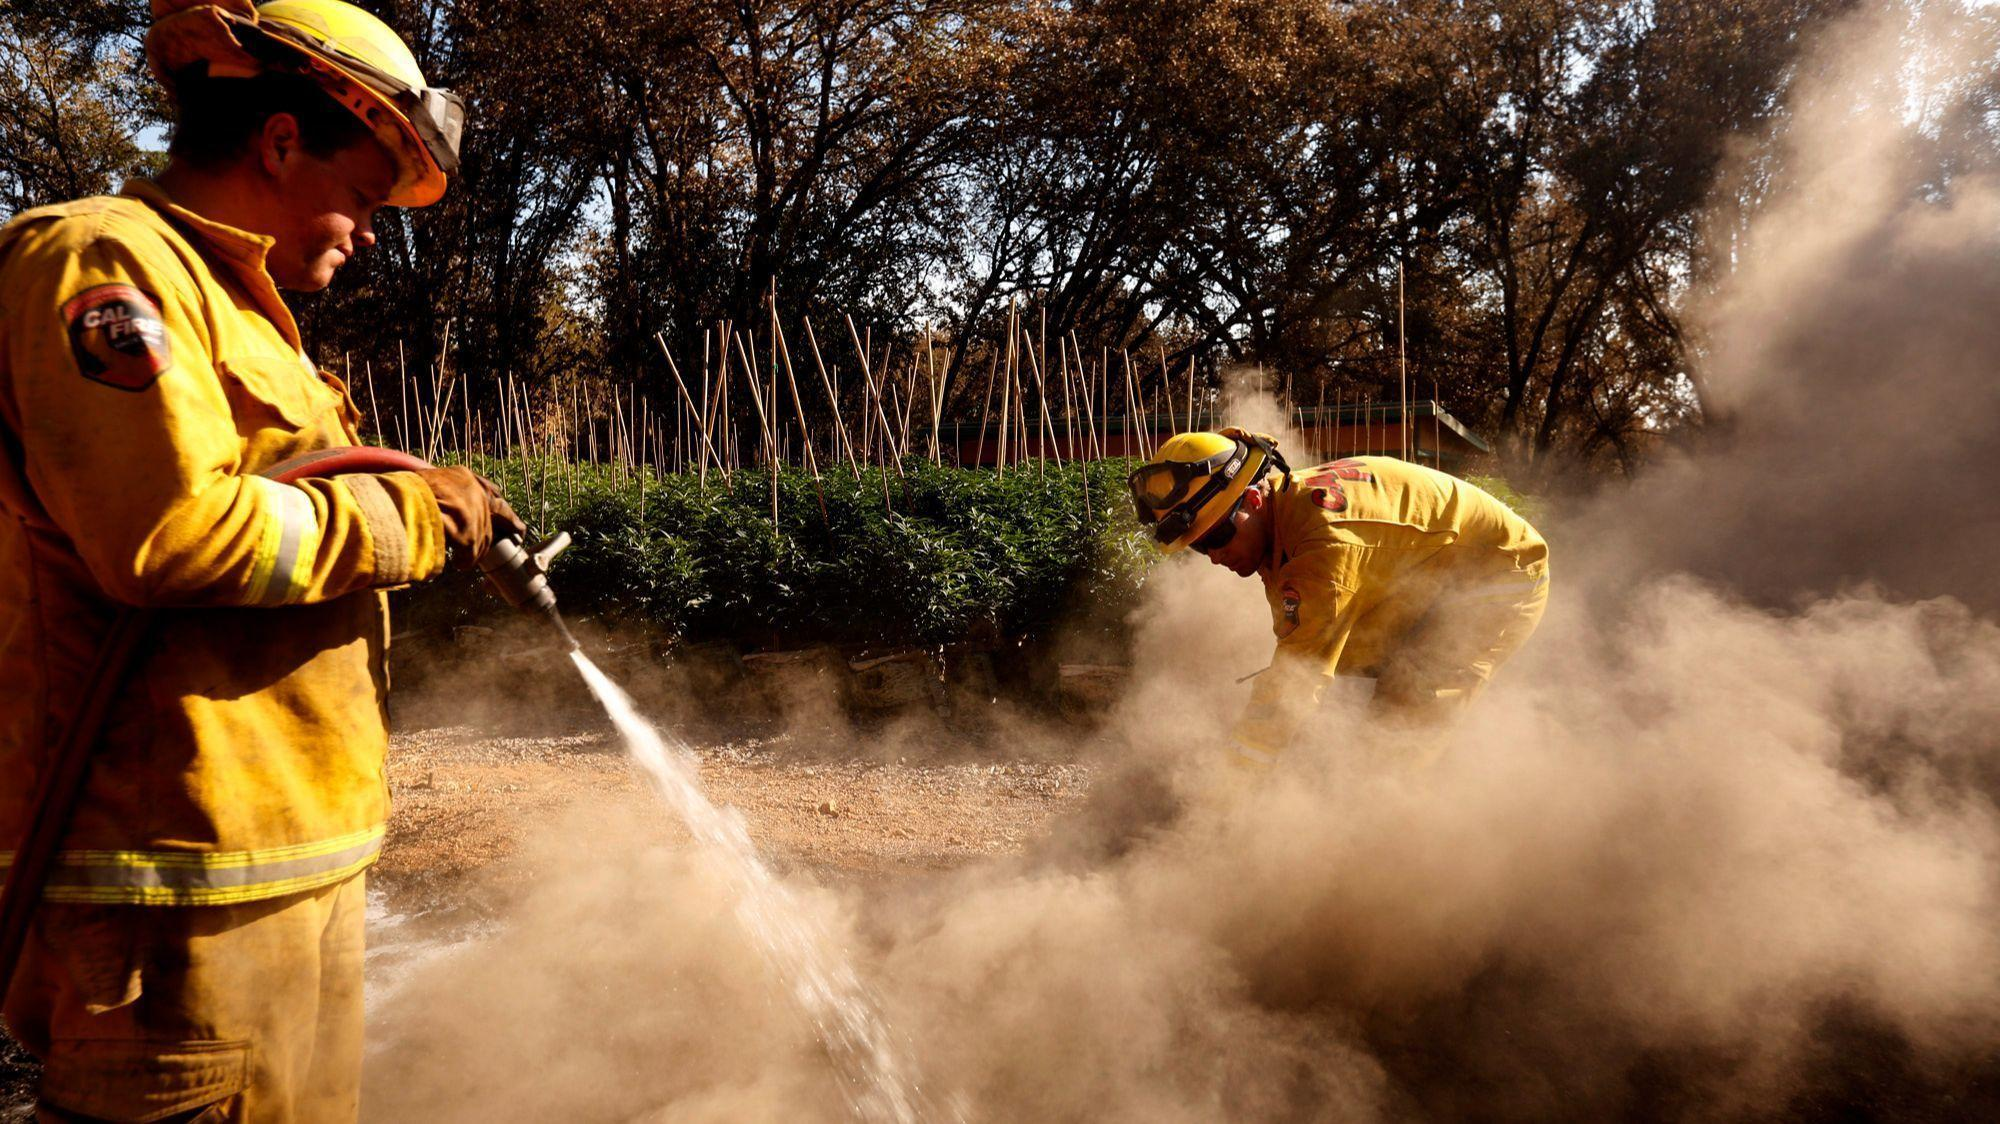 wildfires devastate california pot farmers who must rebuild